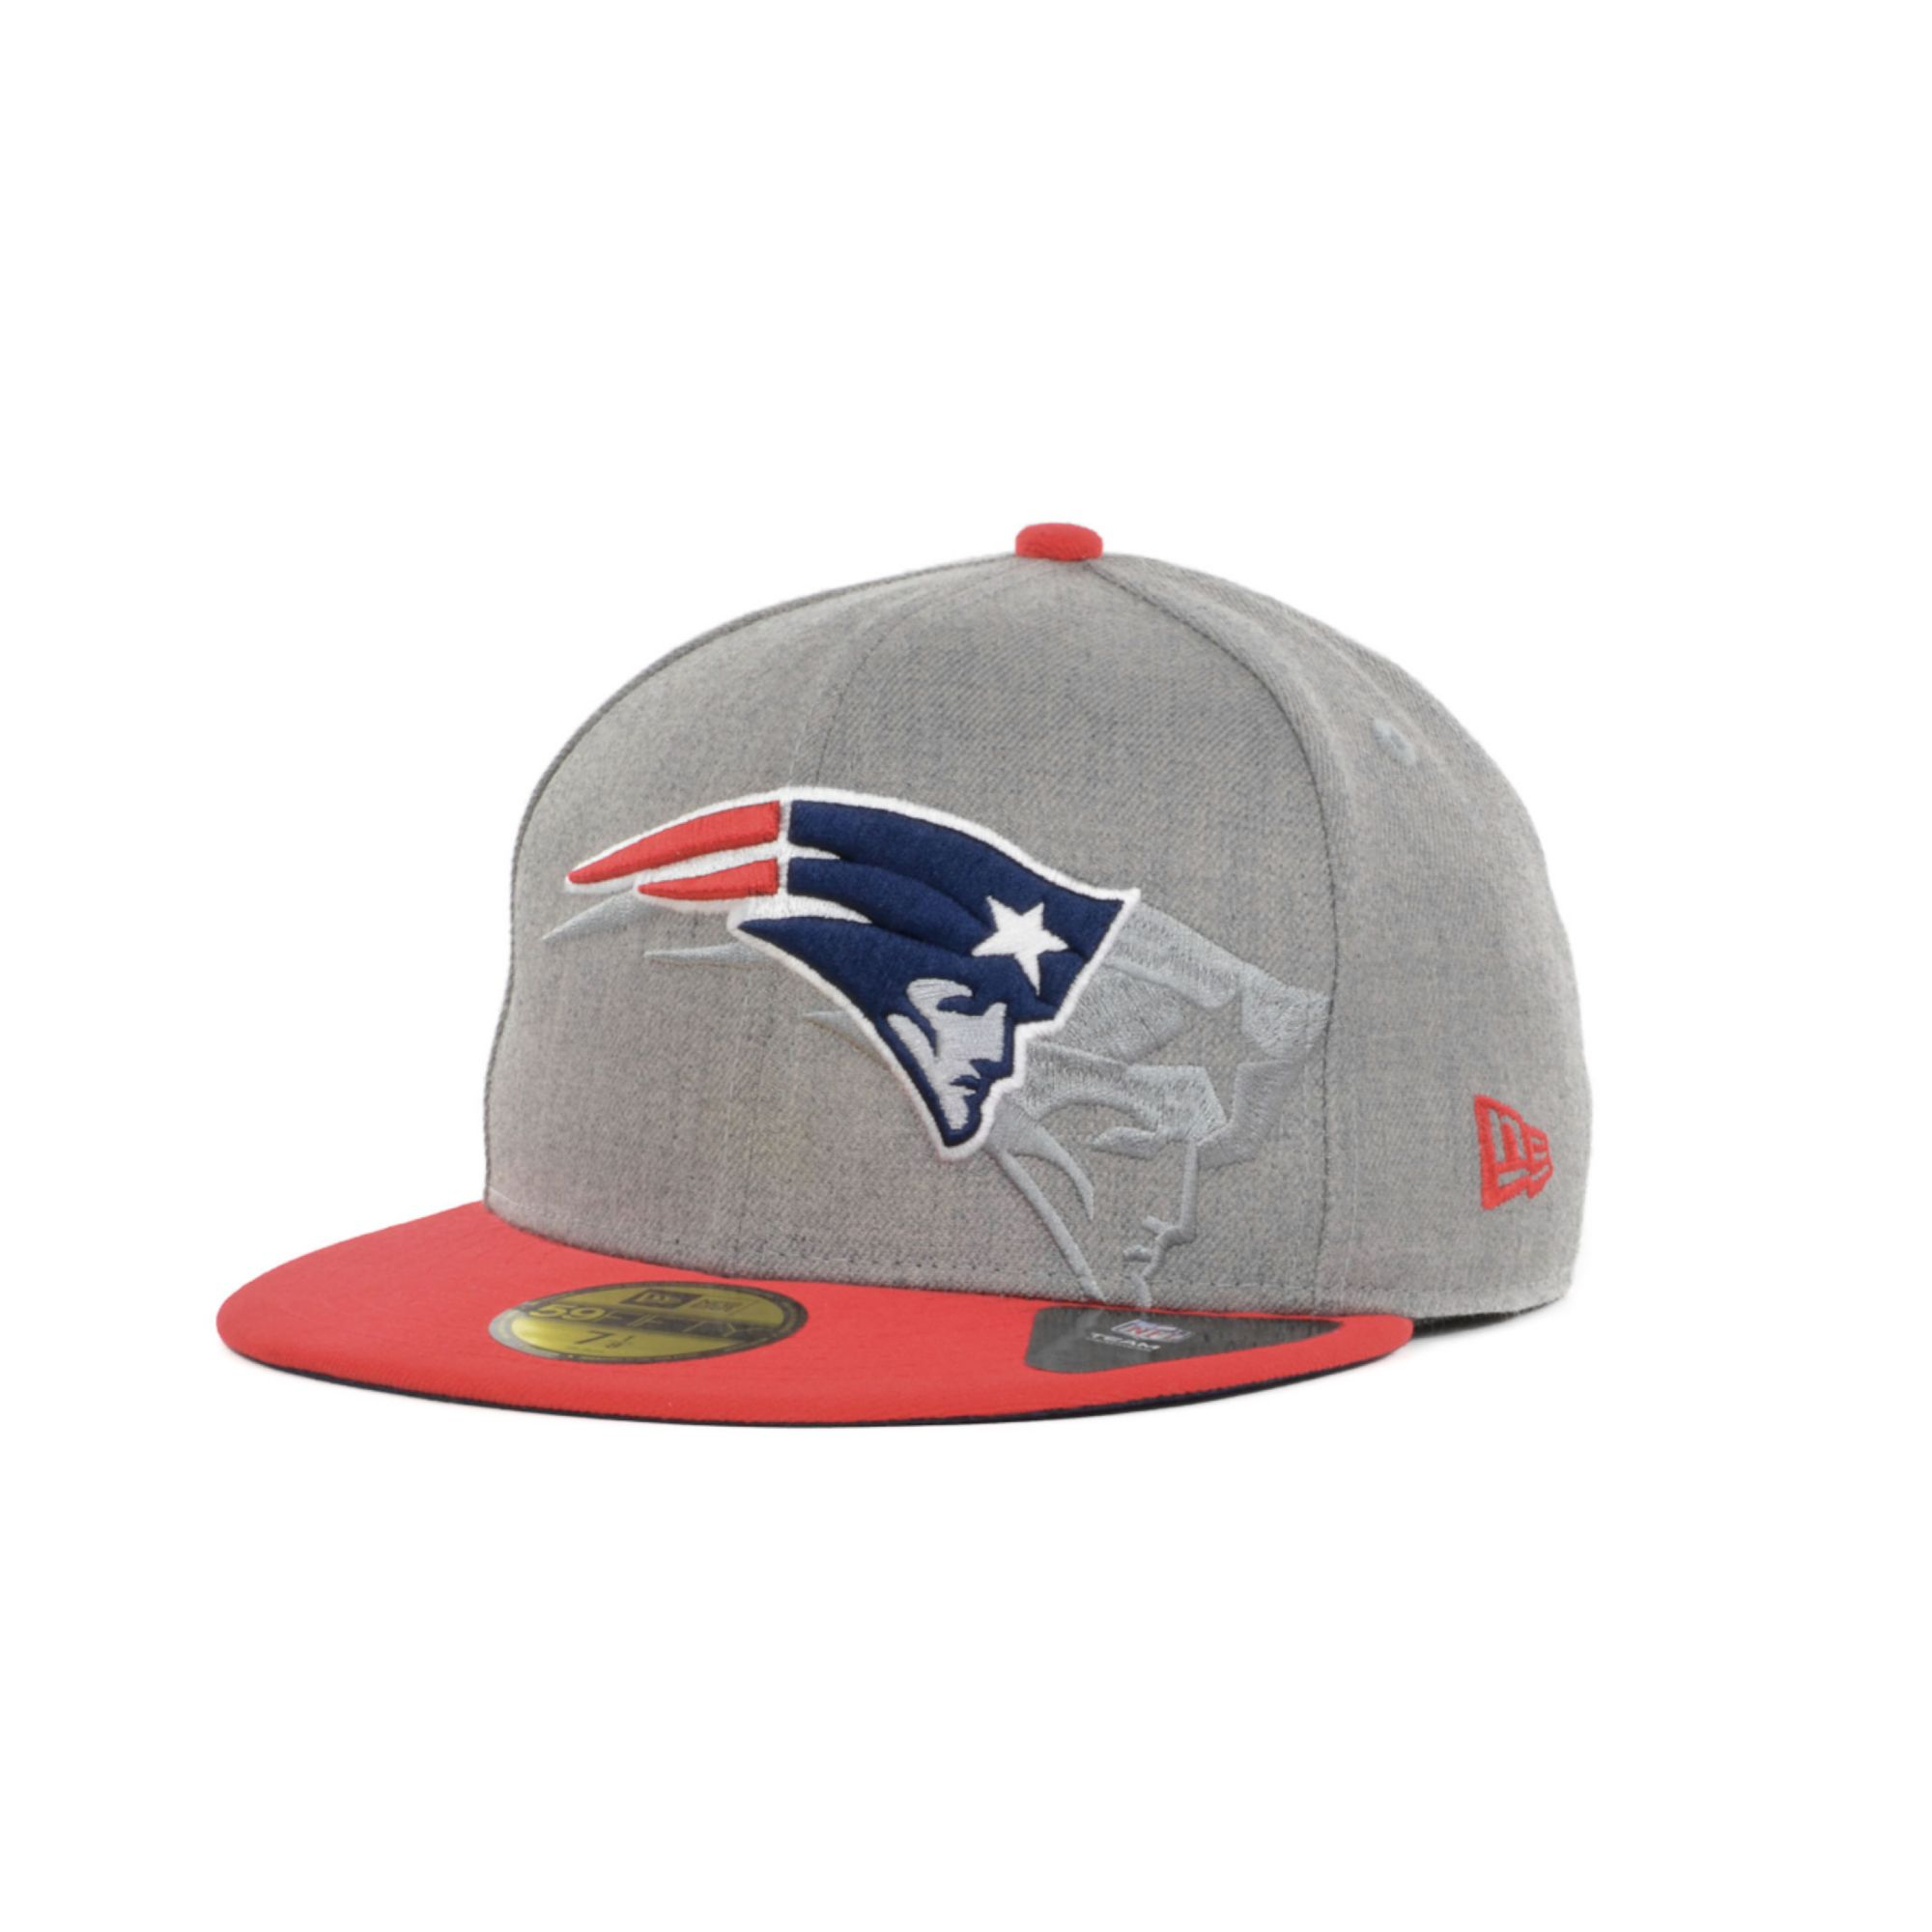 ... nfl new era ireland lyst ktz new england patriots team screening  59fifty cap in gray 436c2 3f90a ... cf2517bf7